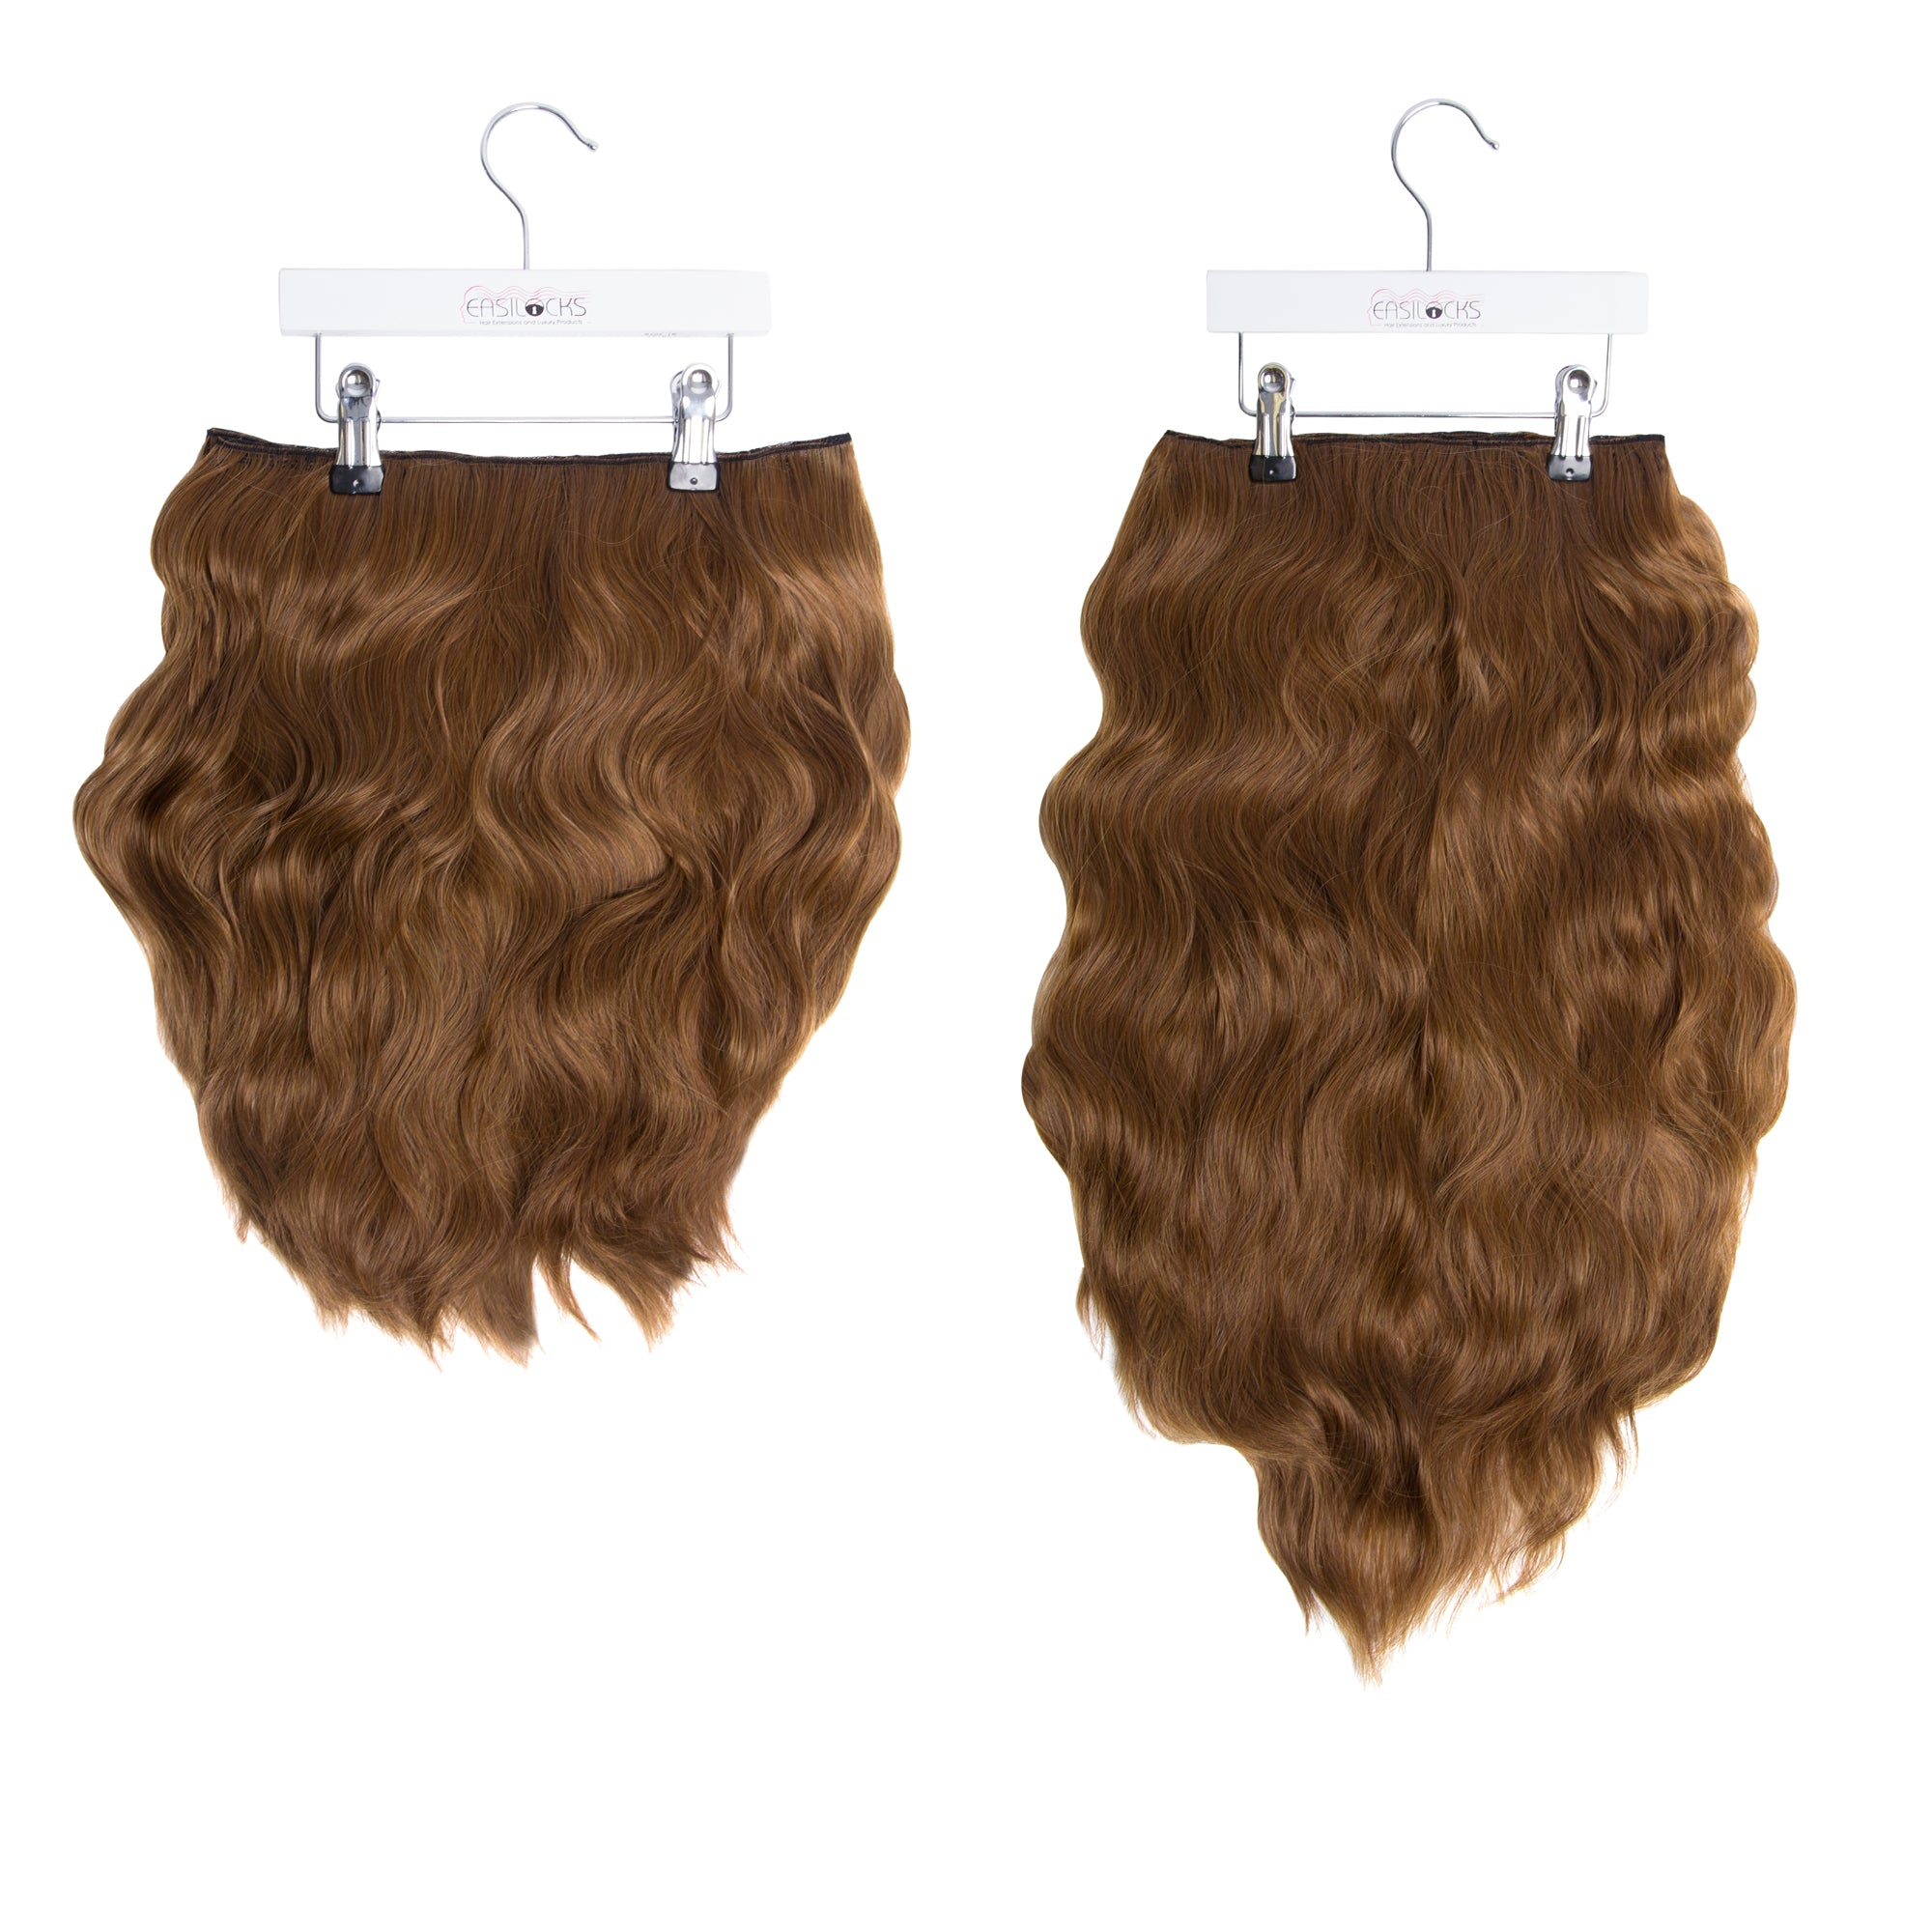 "Miracle Makeover HD Fibre Clip In Hair Extensions - 14"" & 22"" - Lightest Brown (1319143538768)"